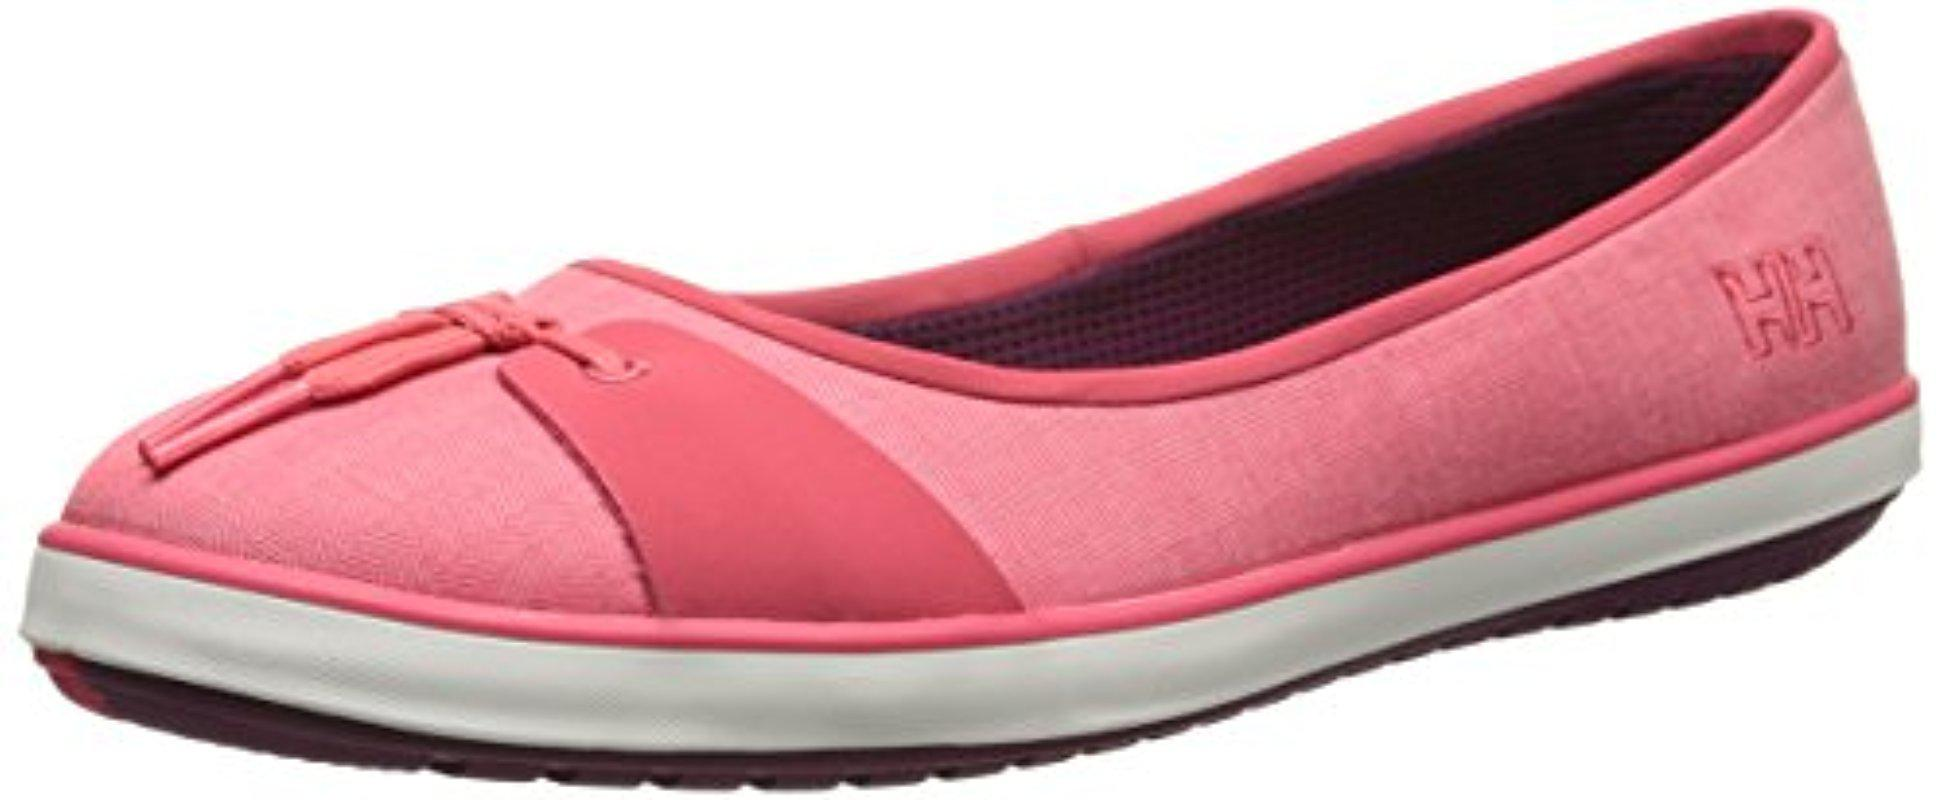 Helly Hansen Helly Hansen W Malin Slip Ons Pink pay with paypal for sale discount largest supplier pick a best for sale YSYAnaW4n